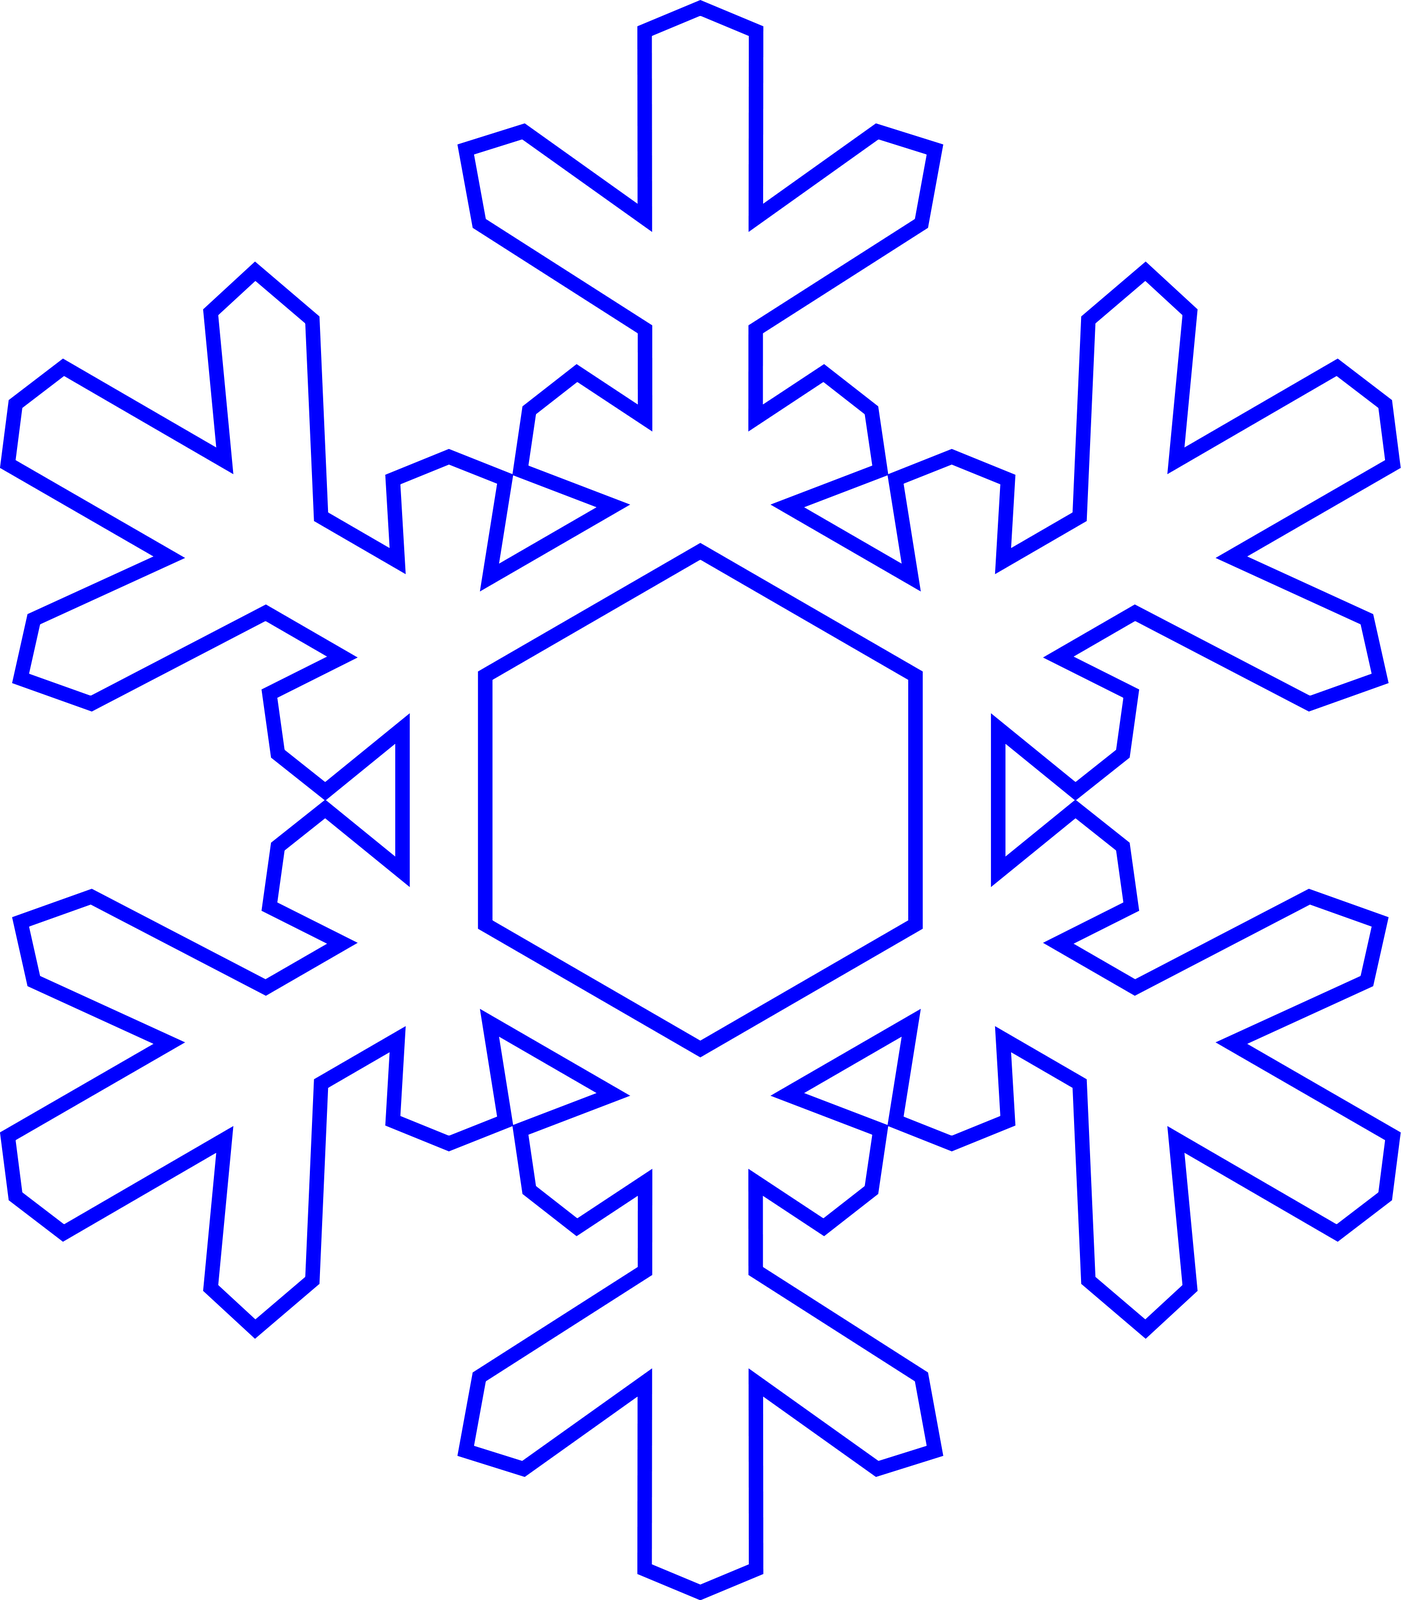 Snowflake outline. Cliparts co christmas recipes